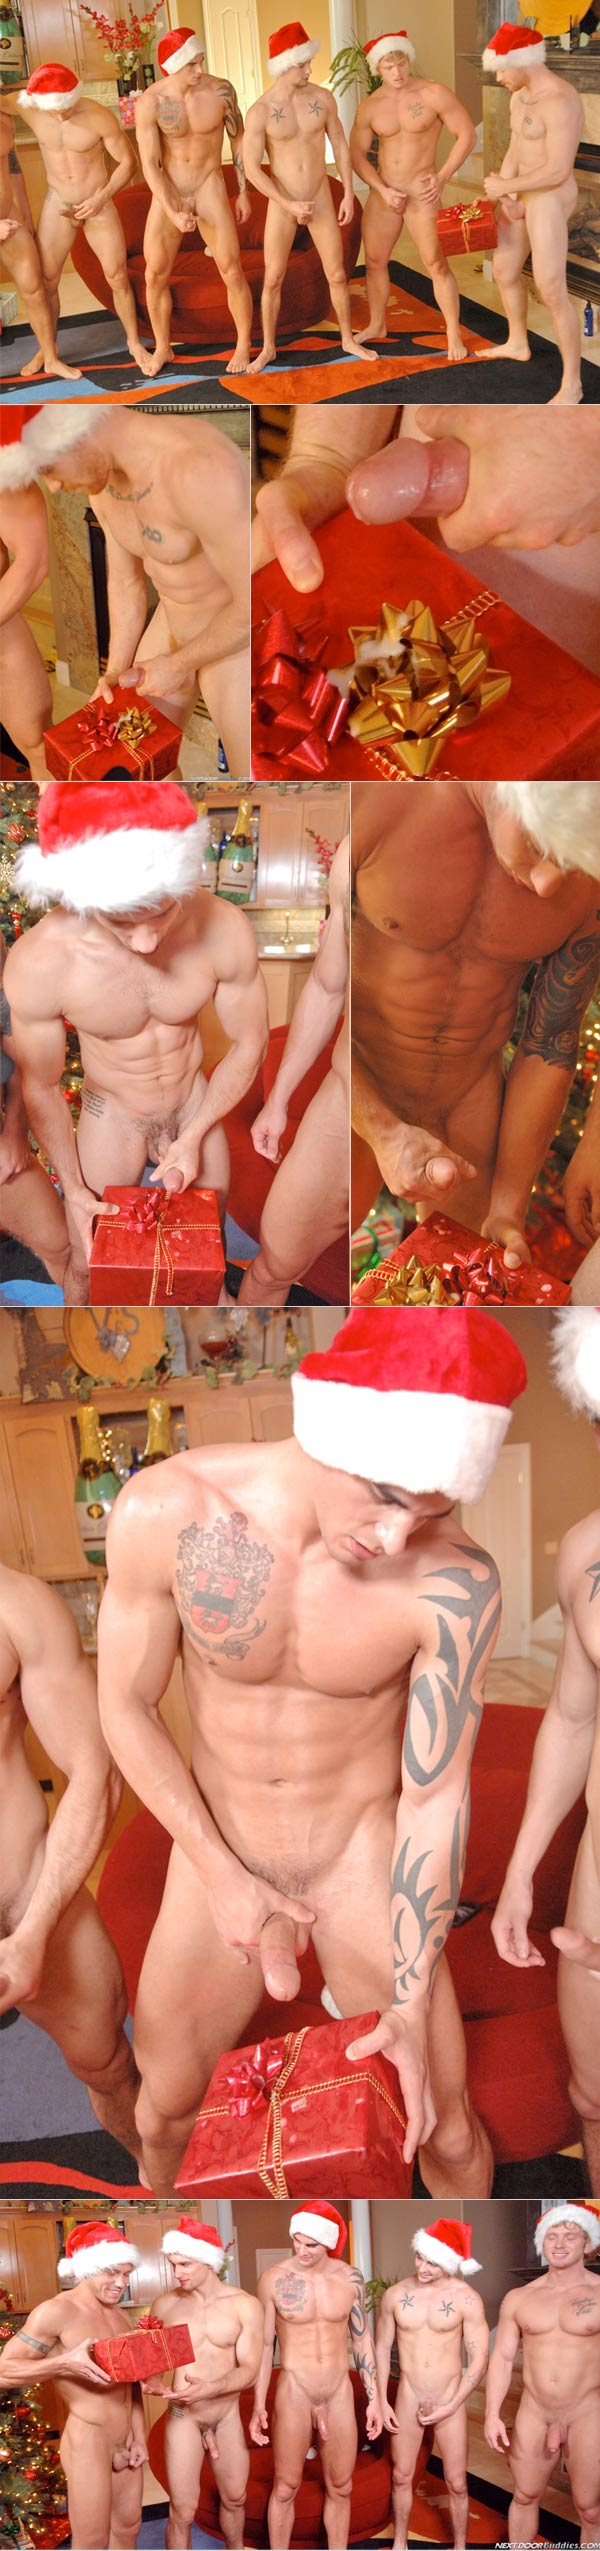 Christmas Orgy (Johnny Torque, James Jamesson, Tyler Torro, Anthony Romero, James Huntsman & Brody Wilder) at Next Door Buddies